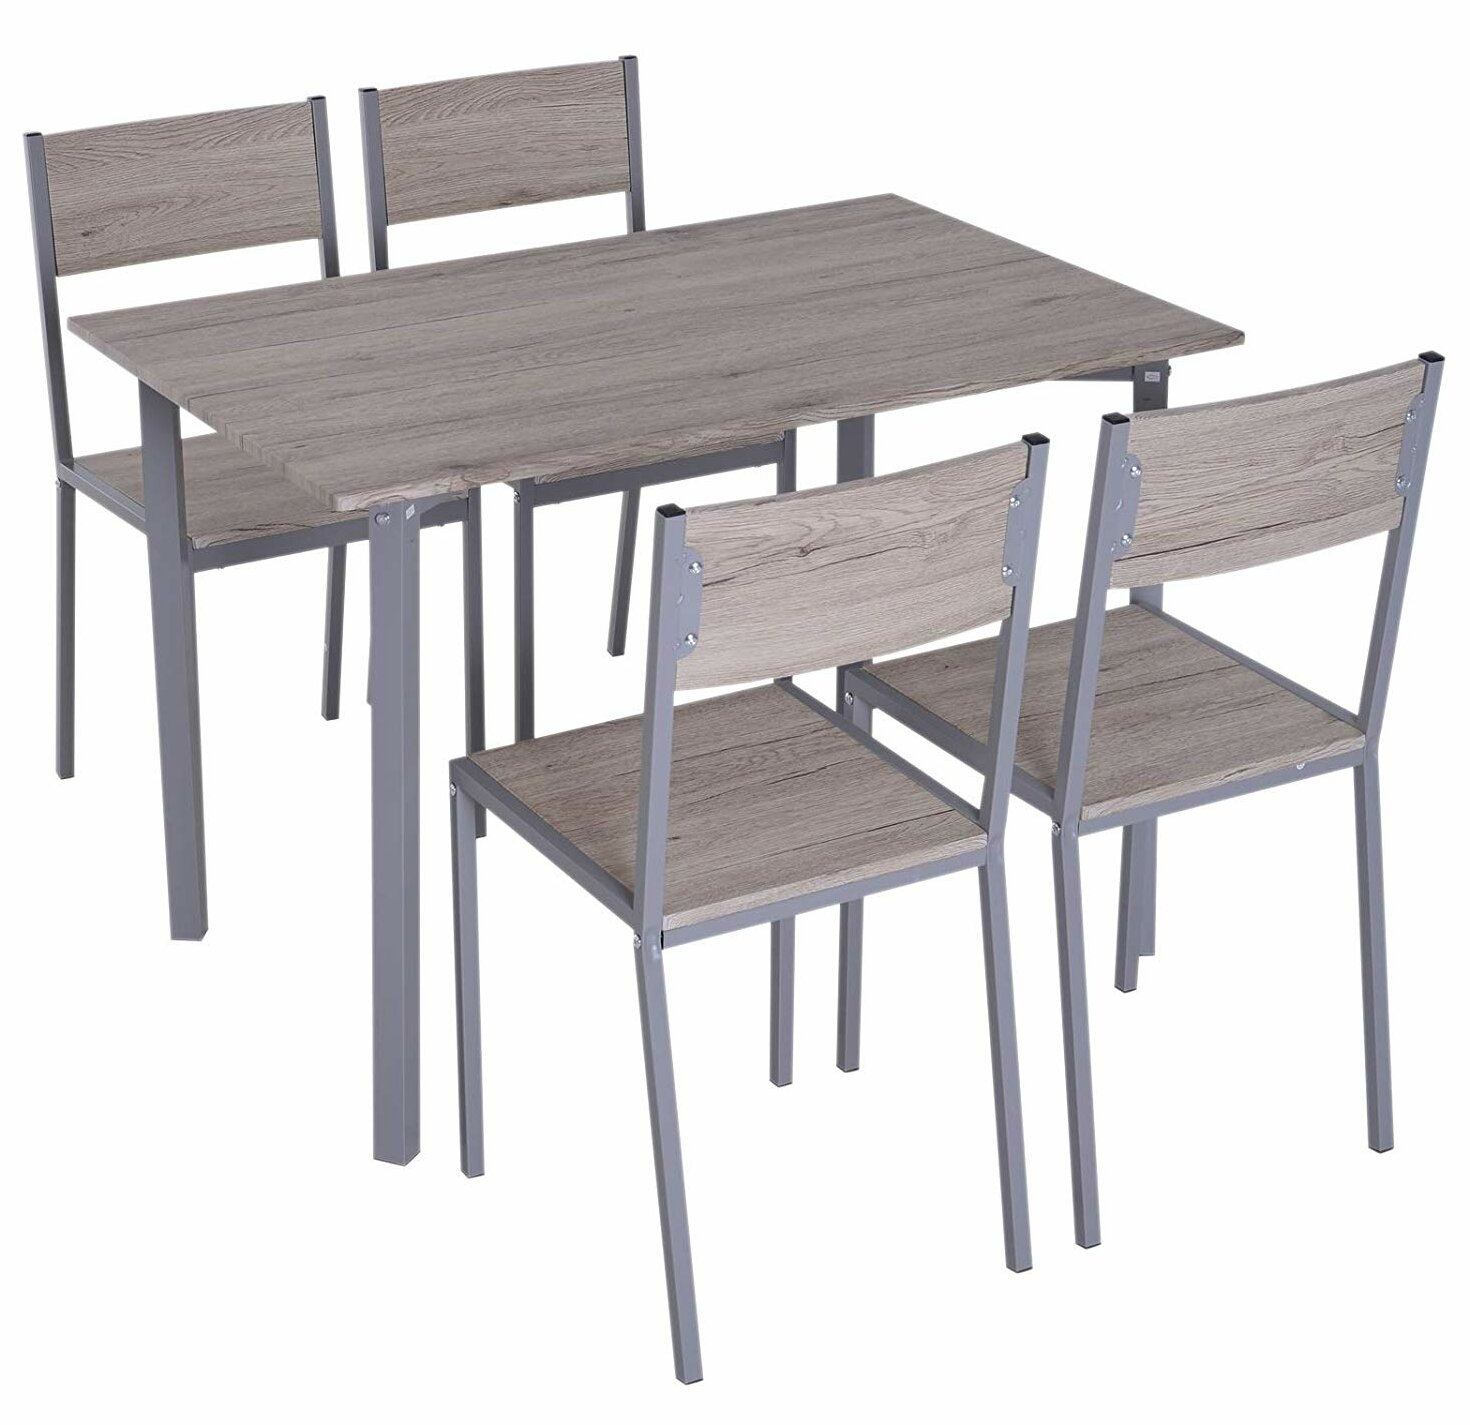 Legros Modern Compact 5 Piece Dining Set Within 2017 Kinsler 3 Piece Bistro Sets (View 15 of 20)